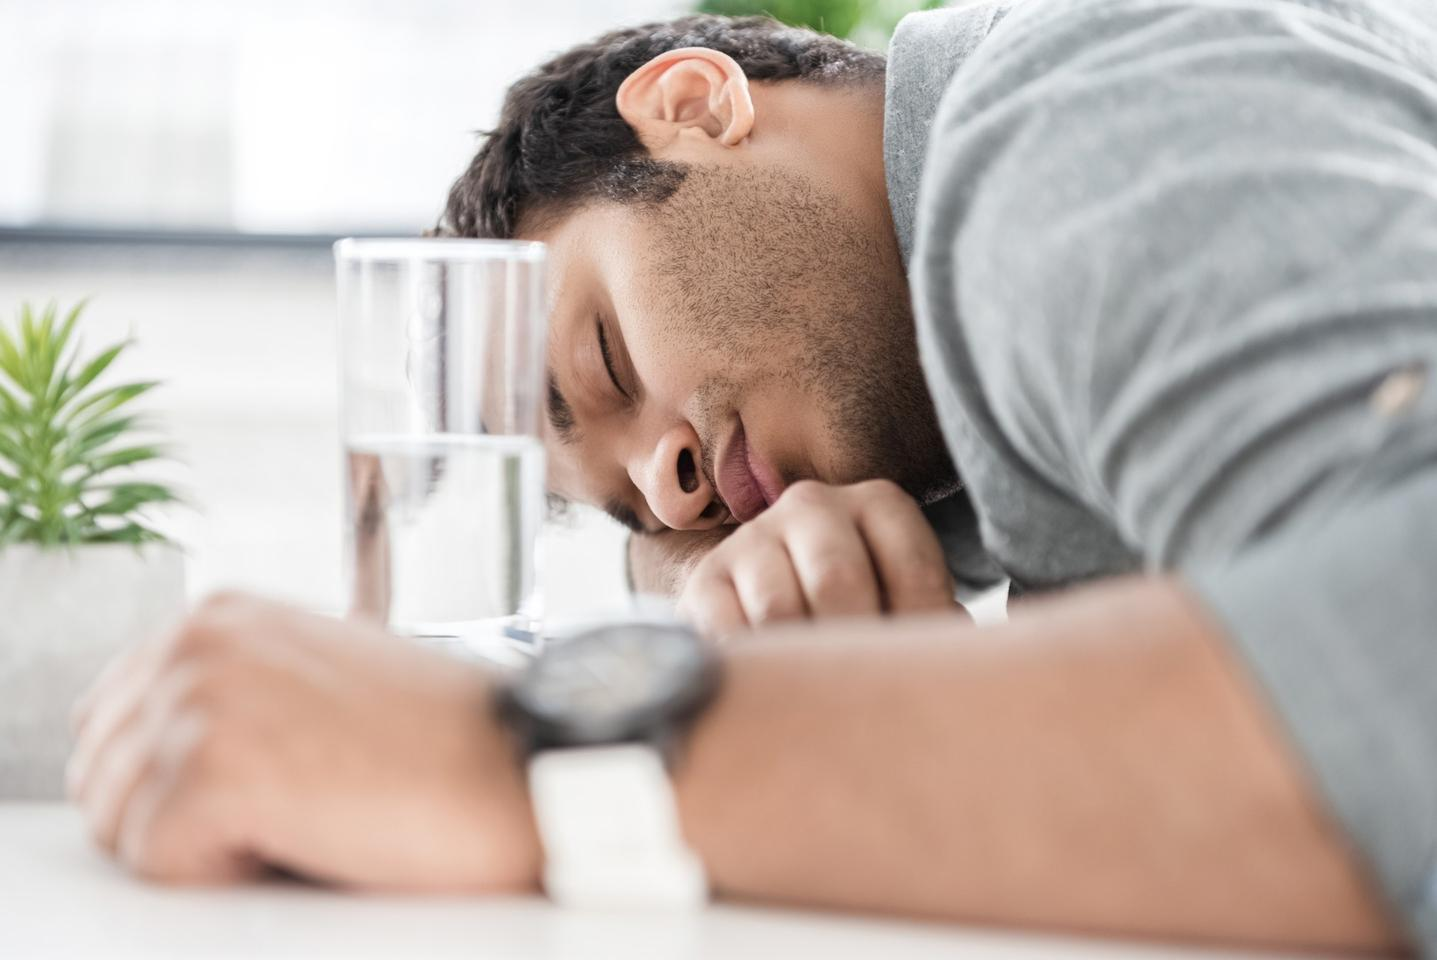 Newresearch suggests sleeping six hours a night may lower the release of a hormone that directly controls the body's hydration levels